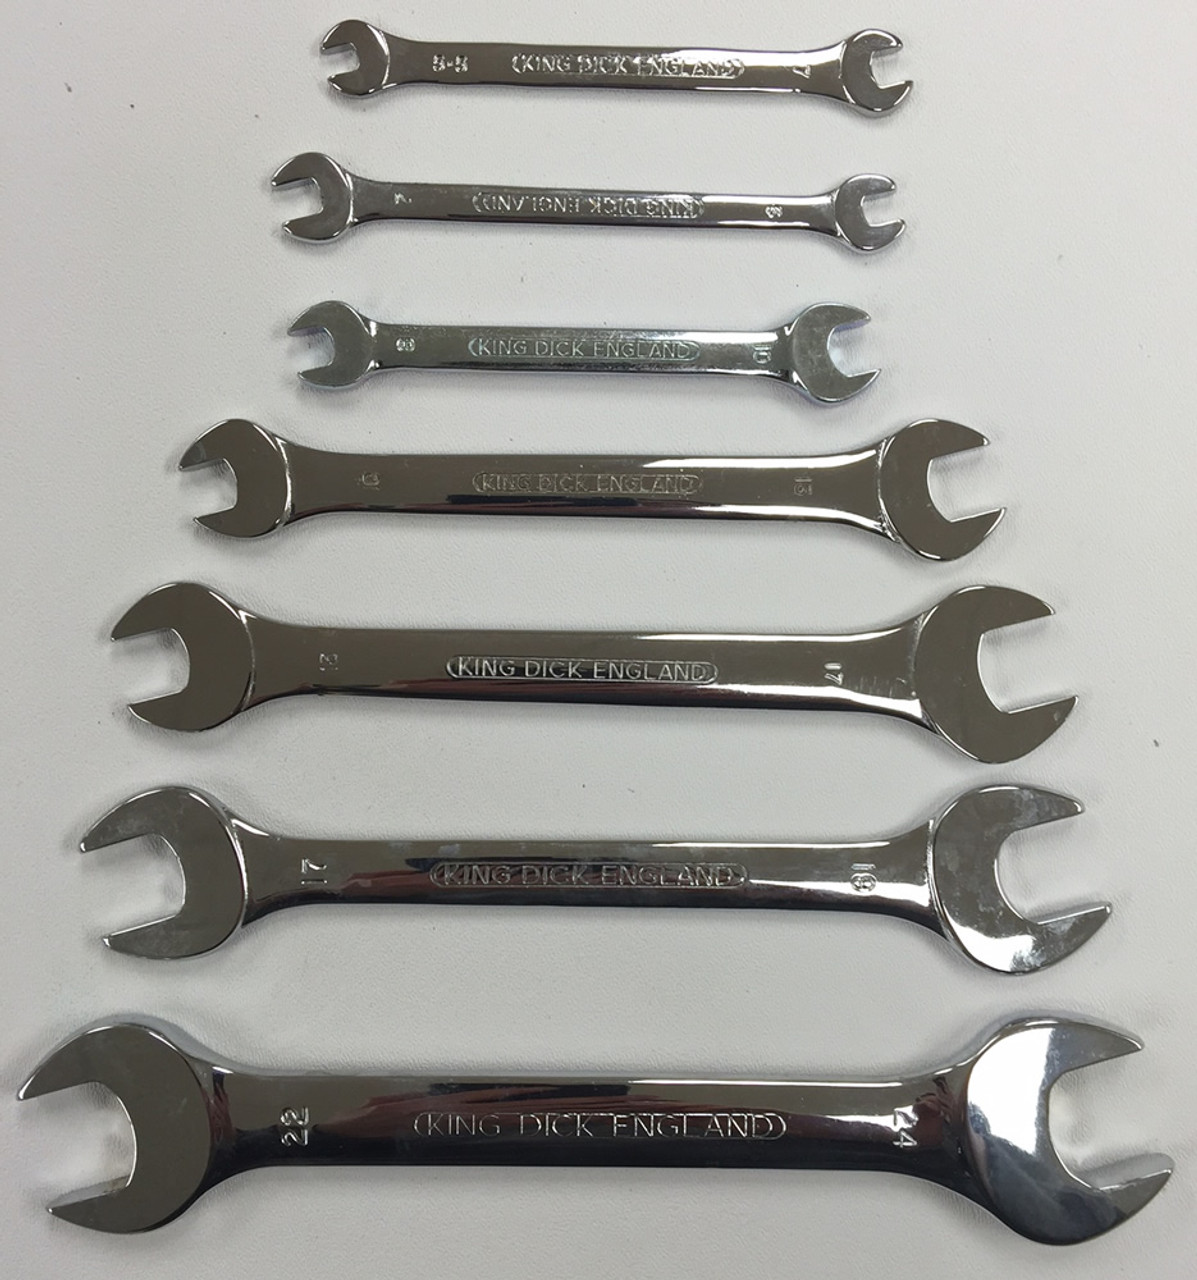 KING DICK 7 PC METRIC OPEN END WRENCH SET